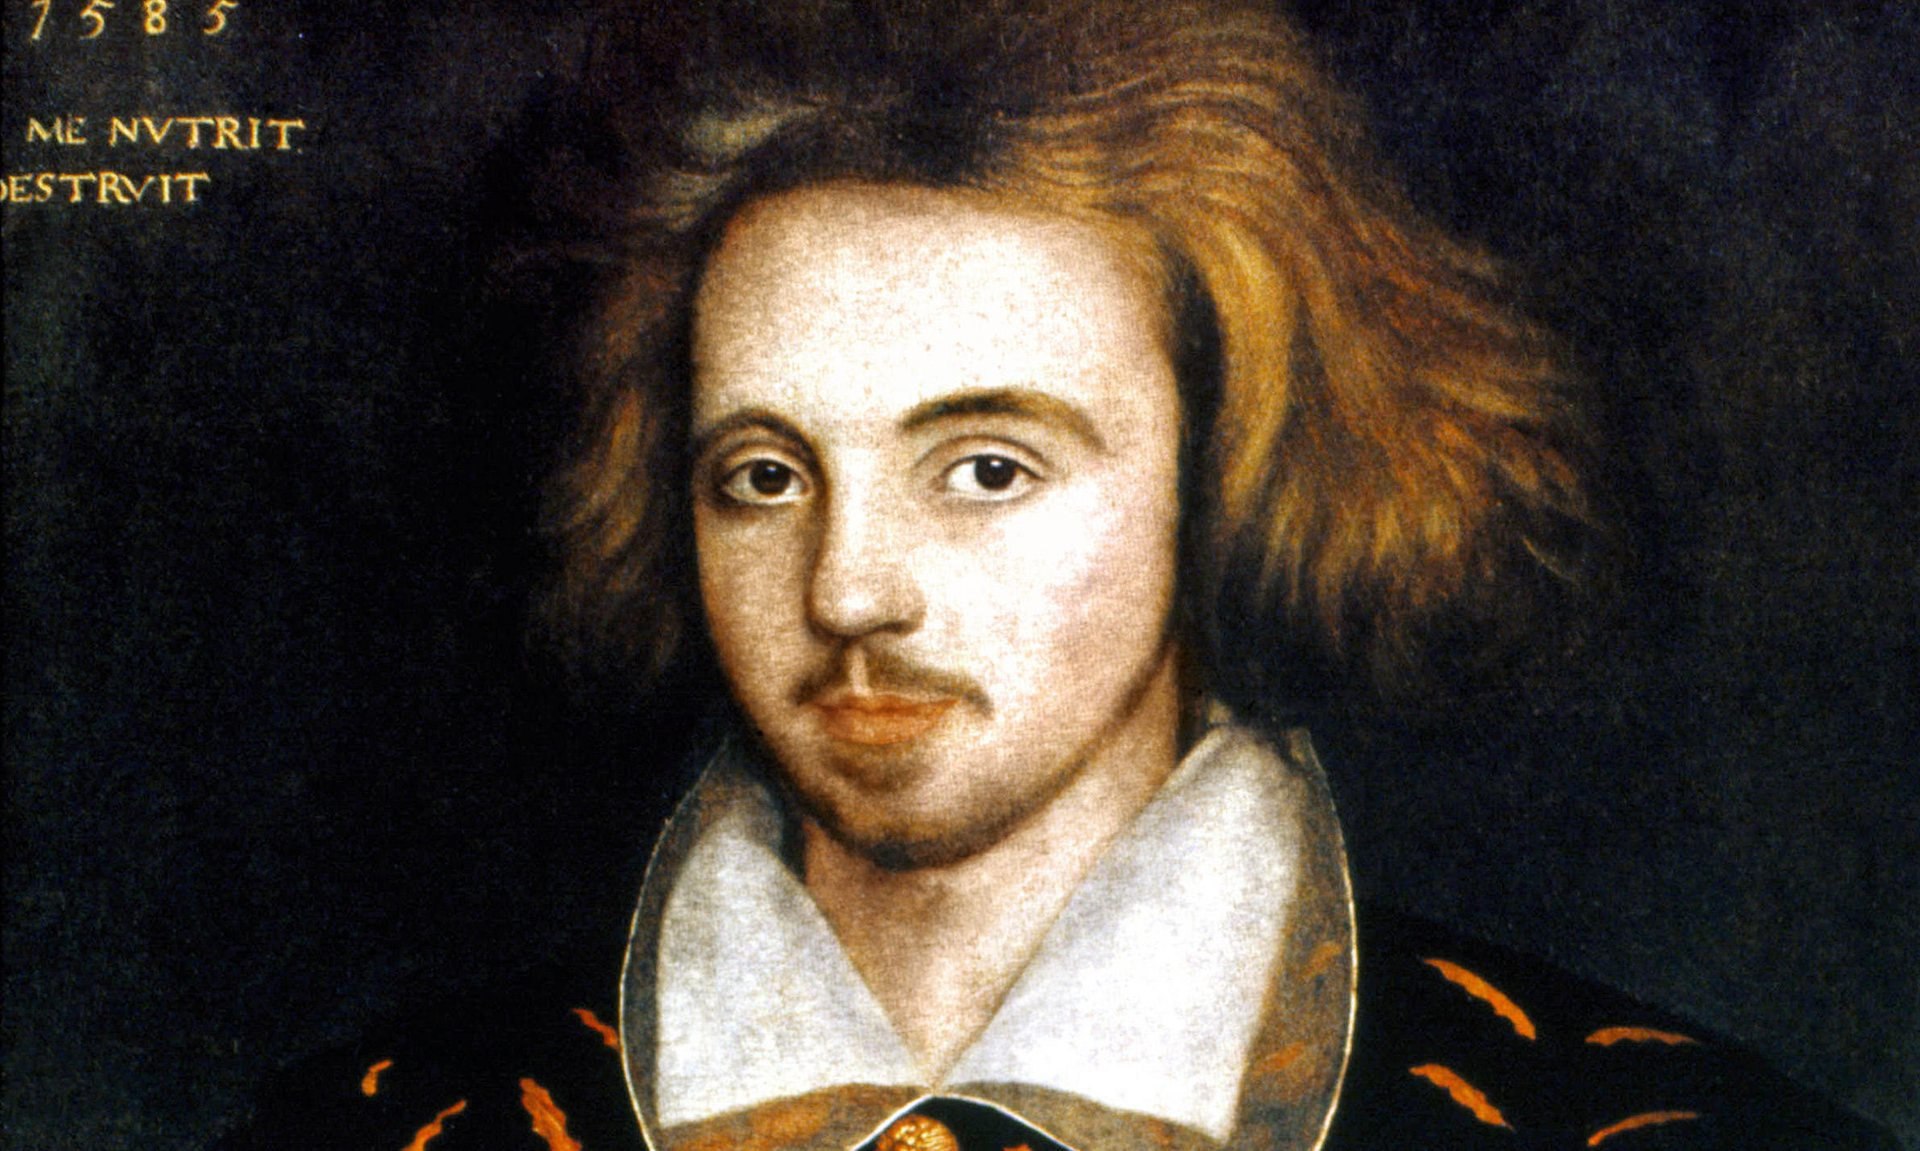 marlowe and shakespeare Shakespeare's 'henry vi': christopher marlowe officially credited as co-author : the two-way oxford university press will list both william shakespeare and christopher marlowe as co-authors of the .